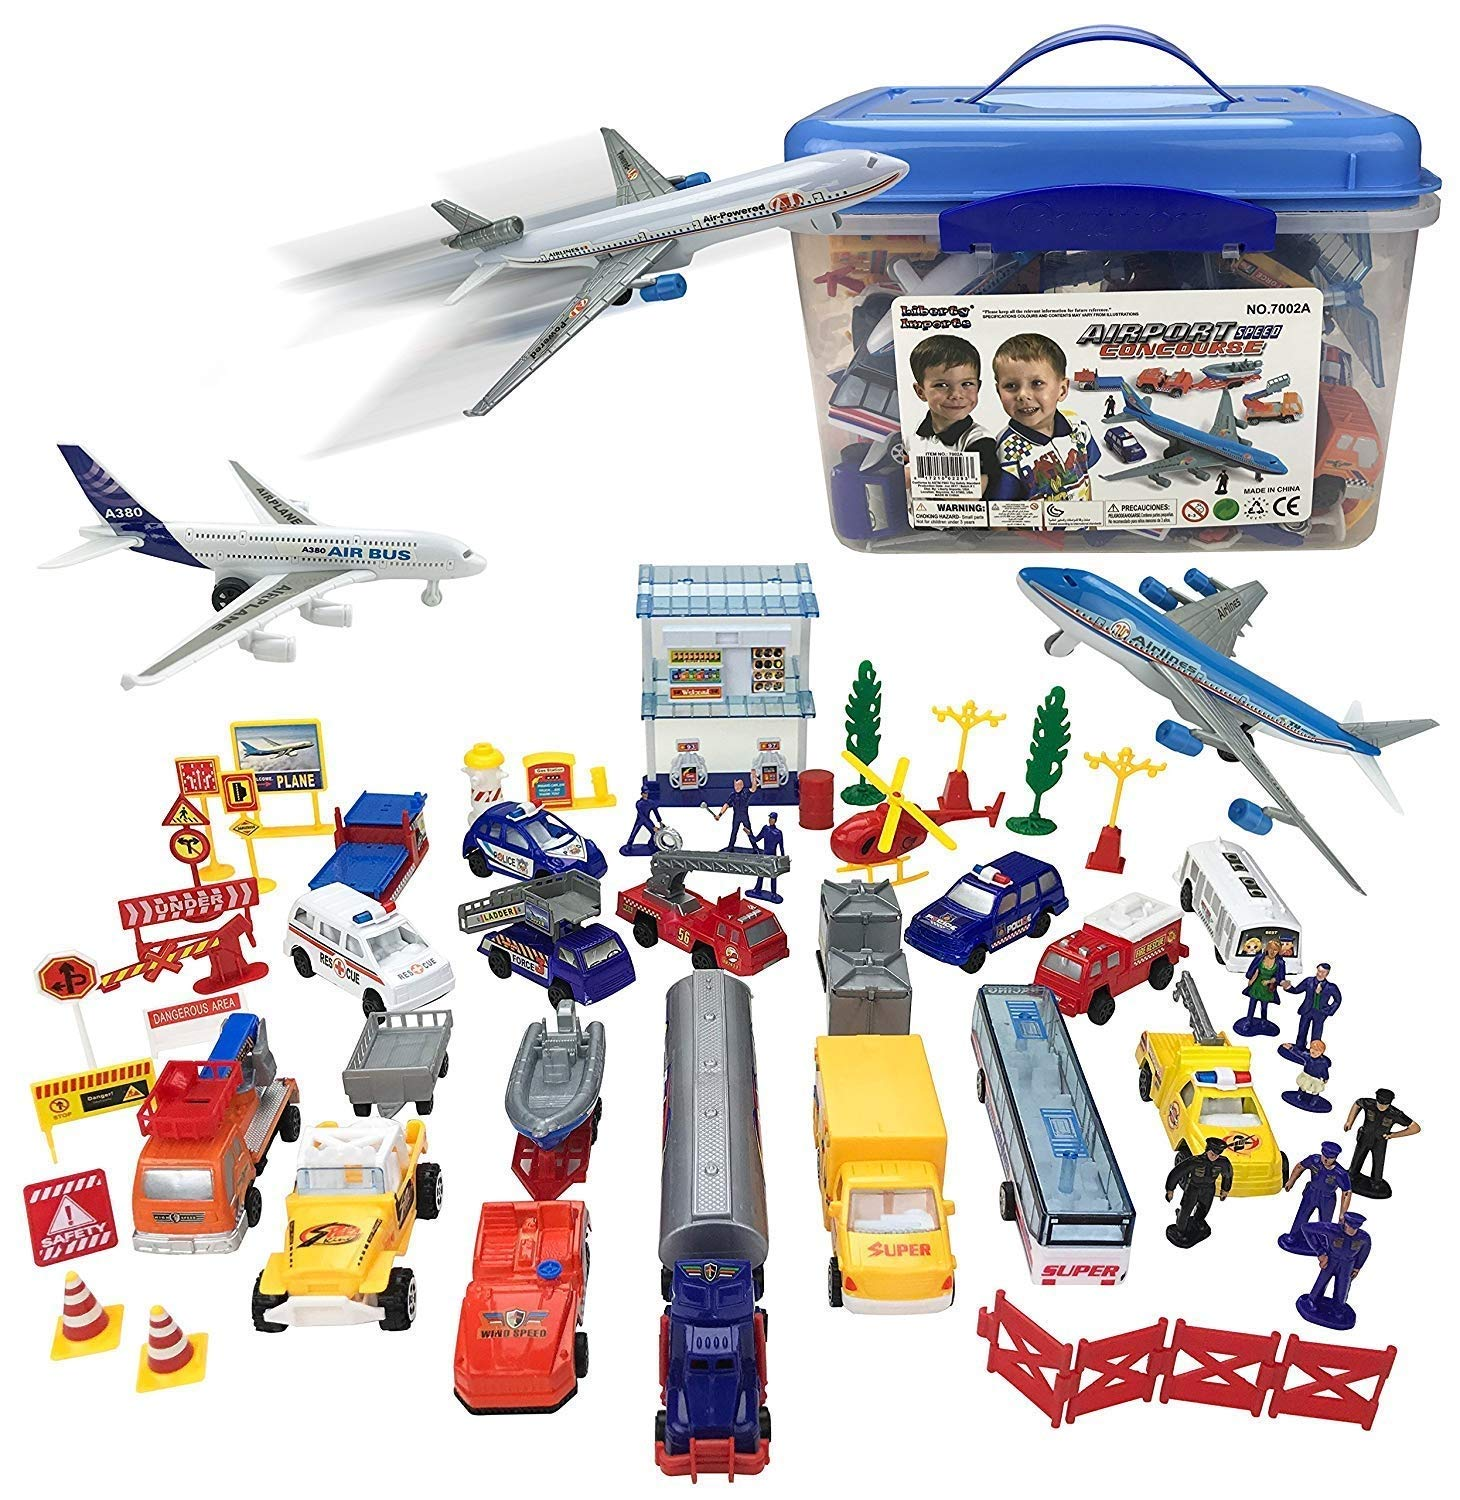 AMPERSAND SHOPS Complete Airport Concourse Vehicle Airplane Workers Cops Police Figurines Accessories Playset with Carrying Case Storage Box by AMPERSAND SHOPS